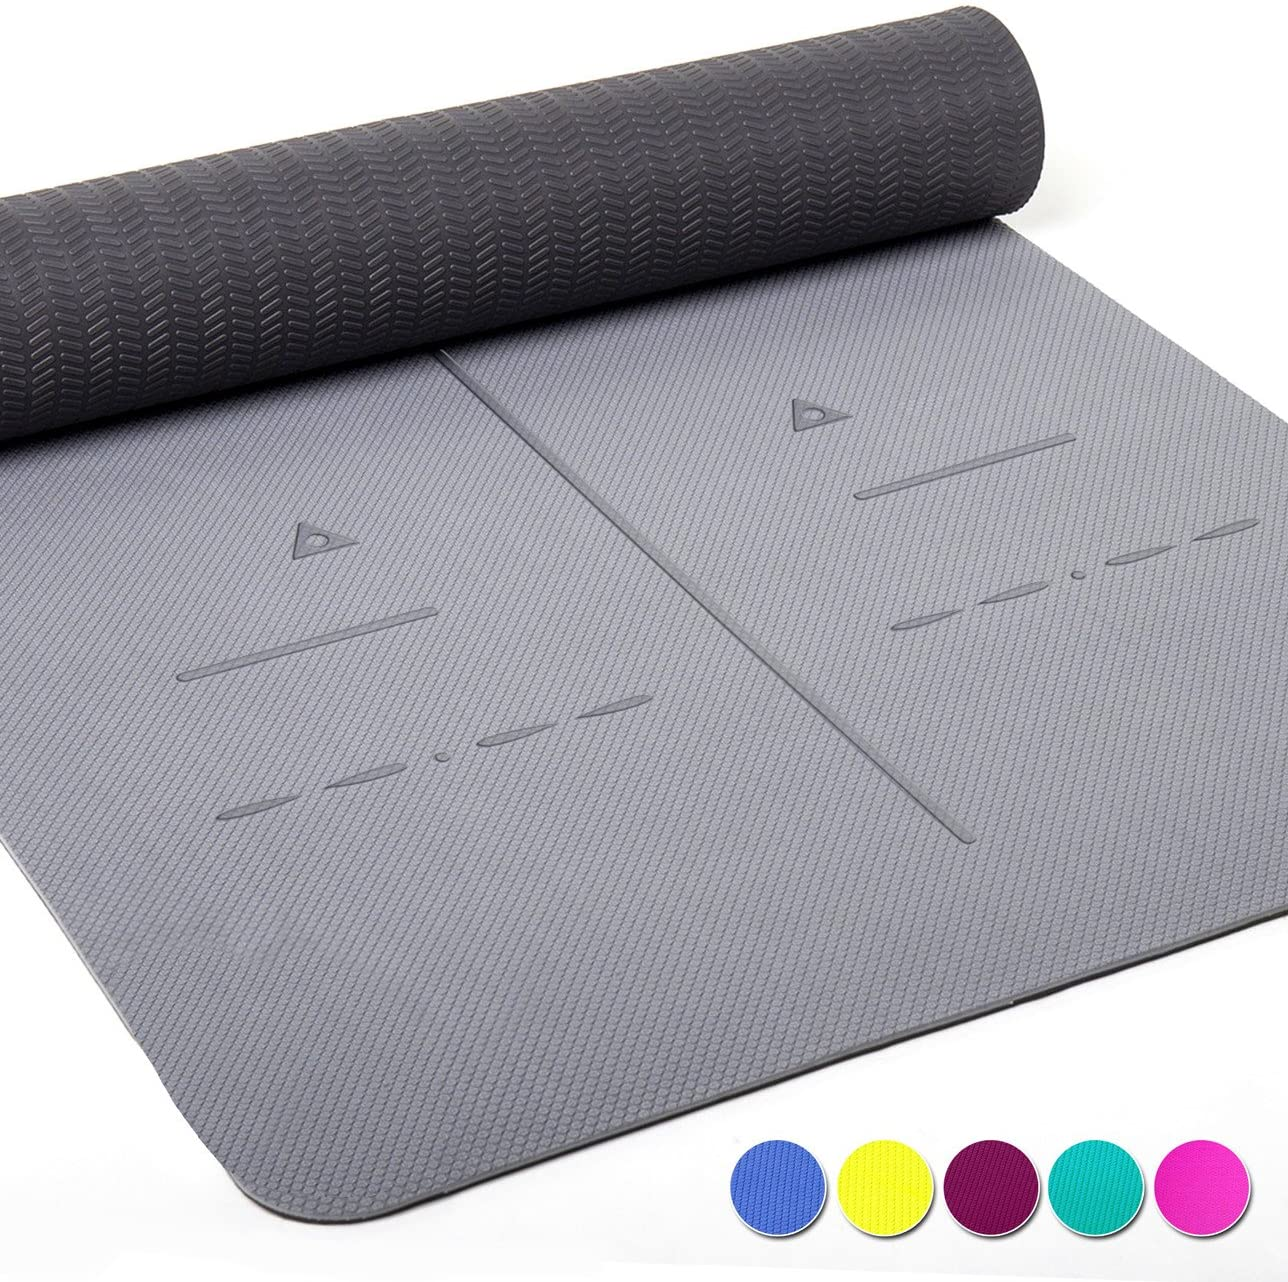 healthyoga eco friendly non slip yoga mat with textured non-slip surface